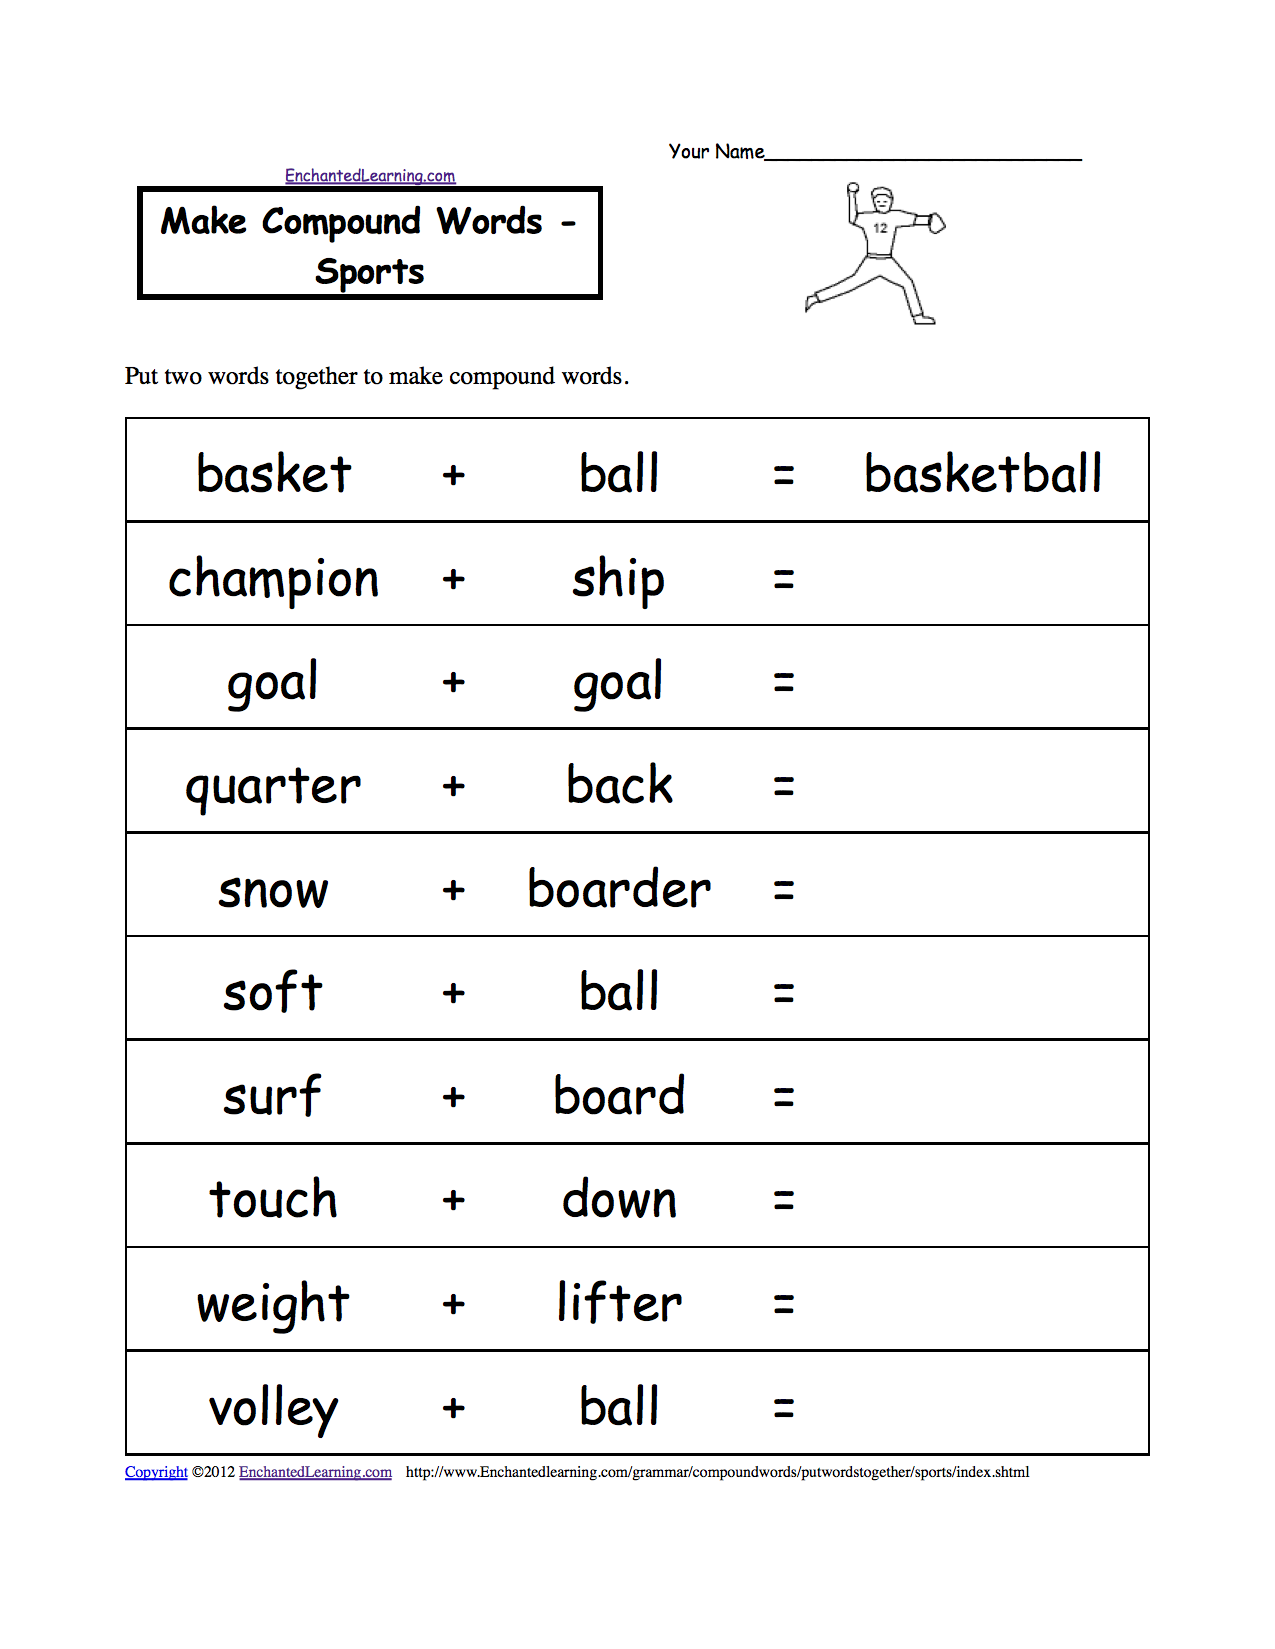 Sports at EnchantedLearning – Play School Worksheets